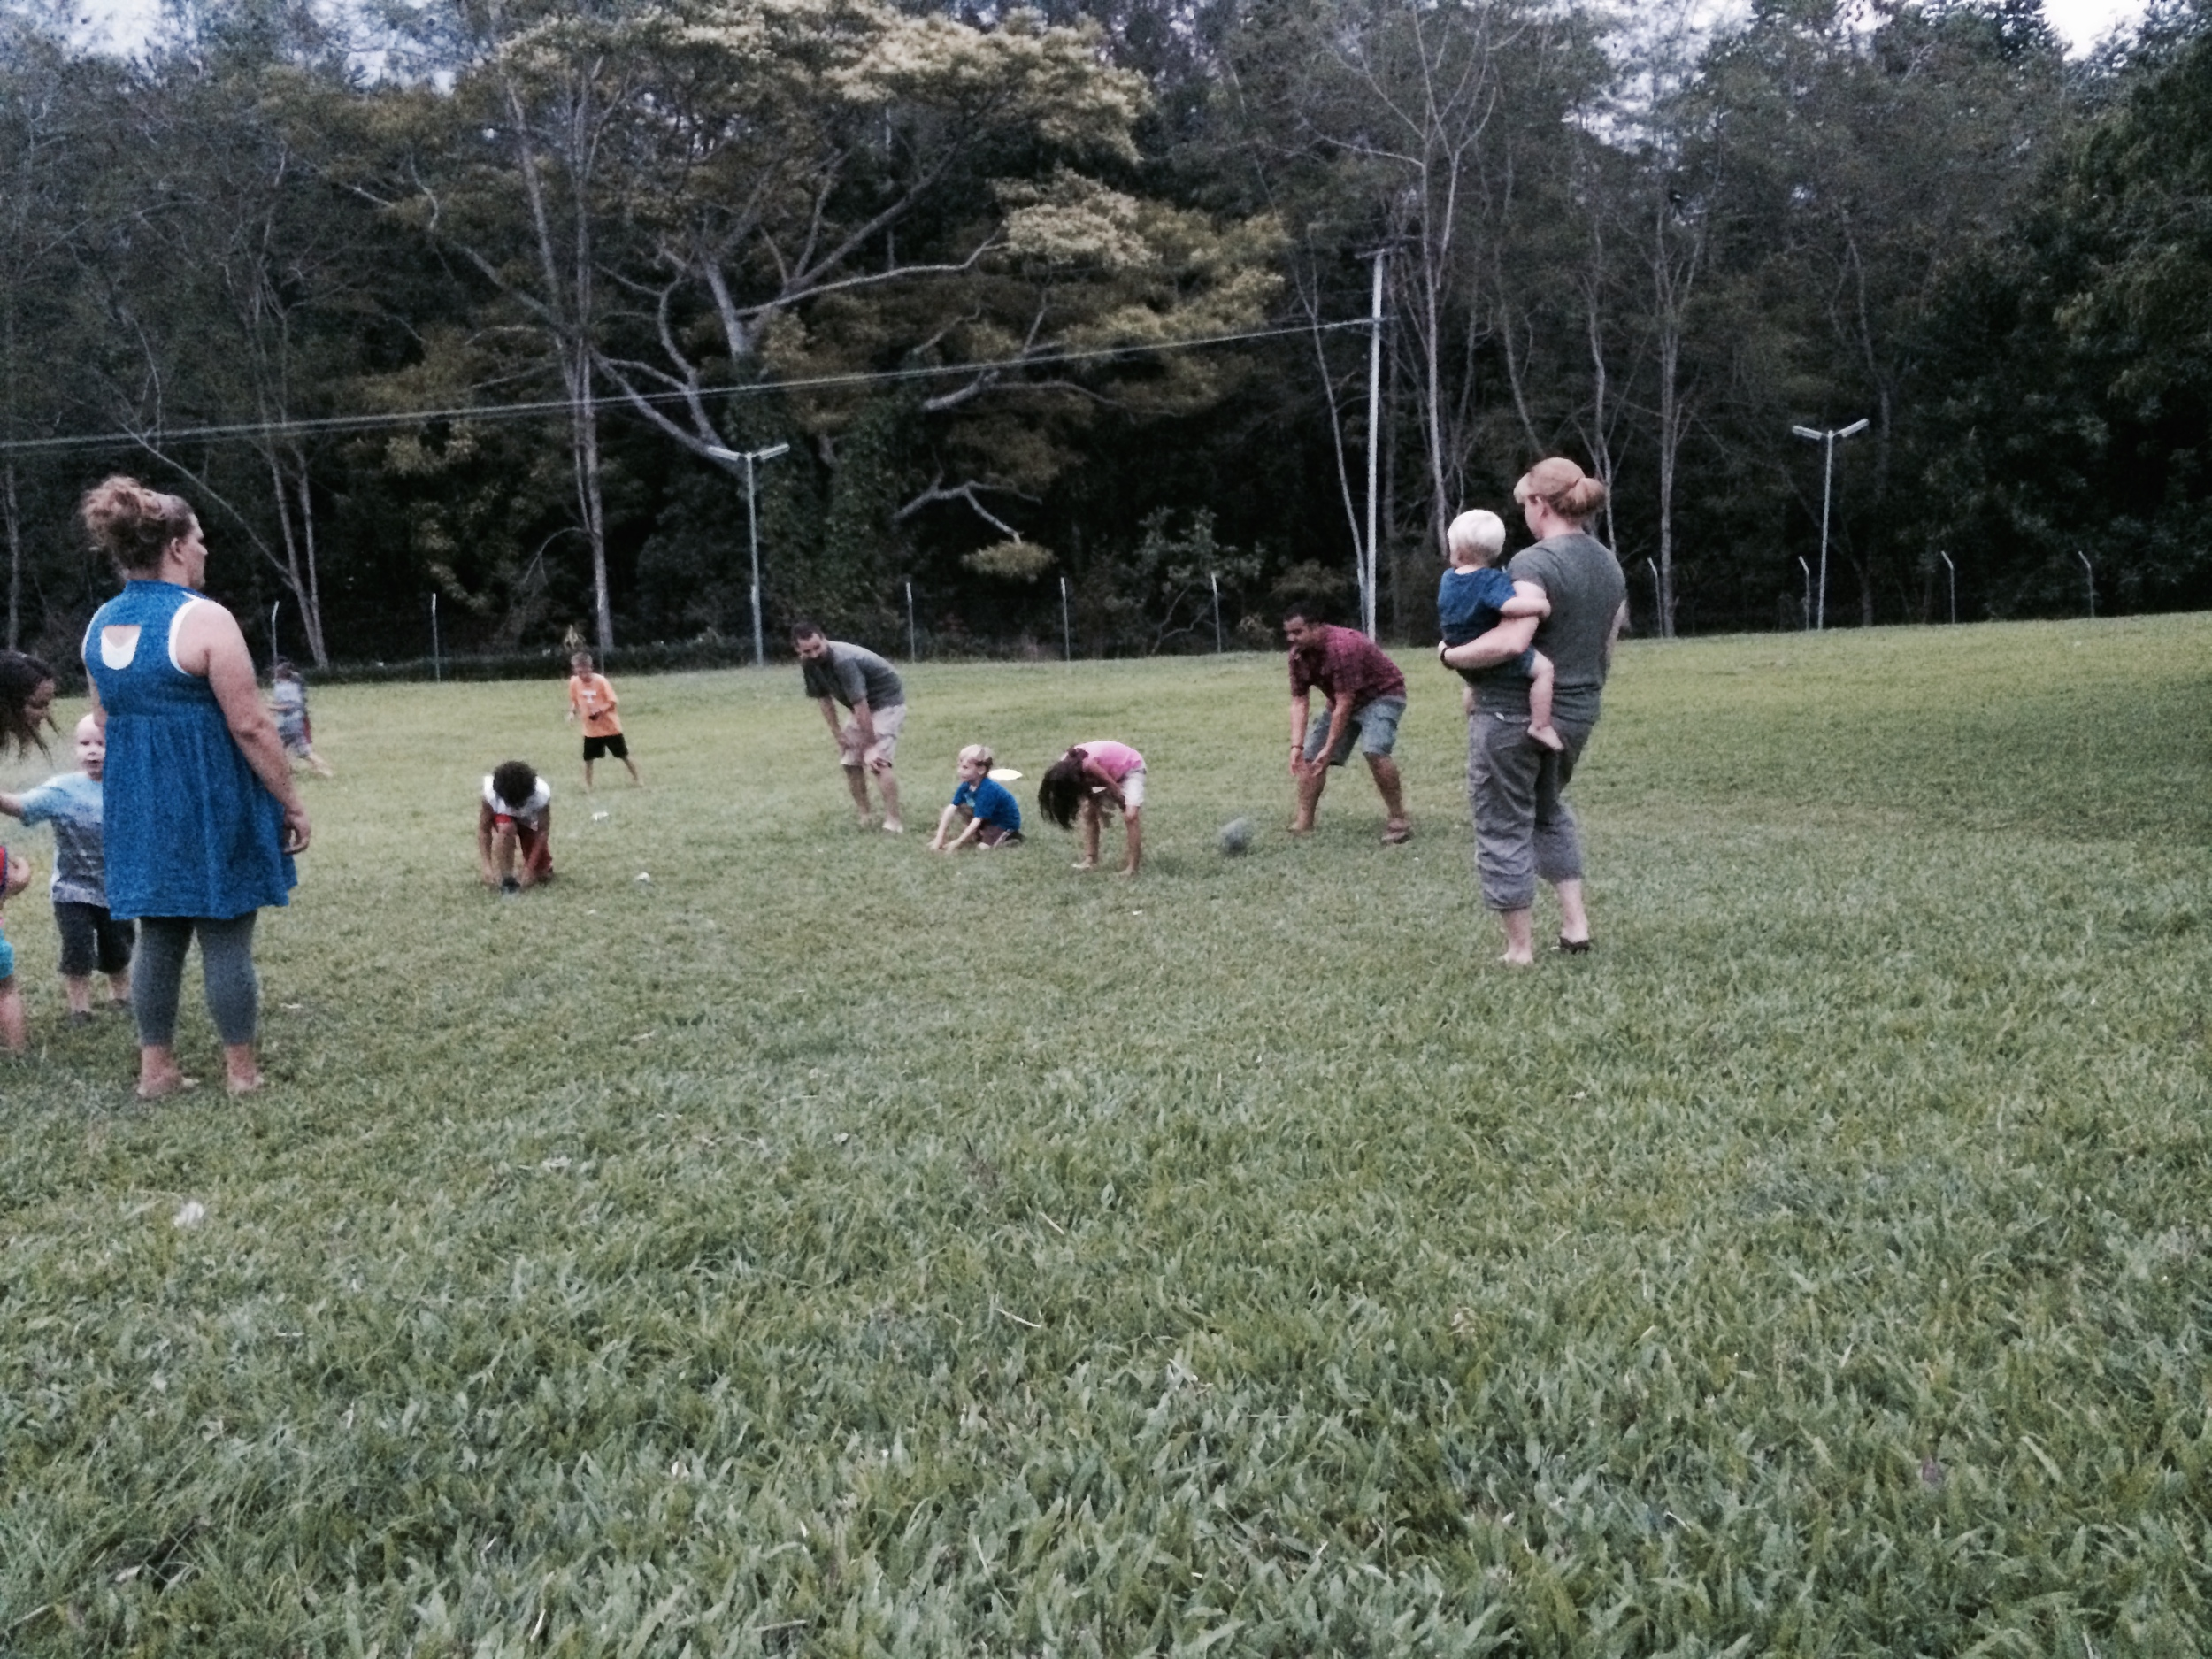 Playing some football after a nice Thanksgiving meal with new friends!